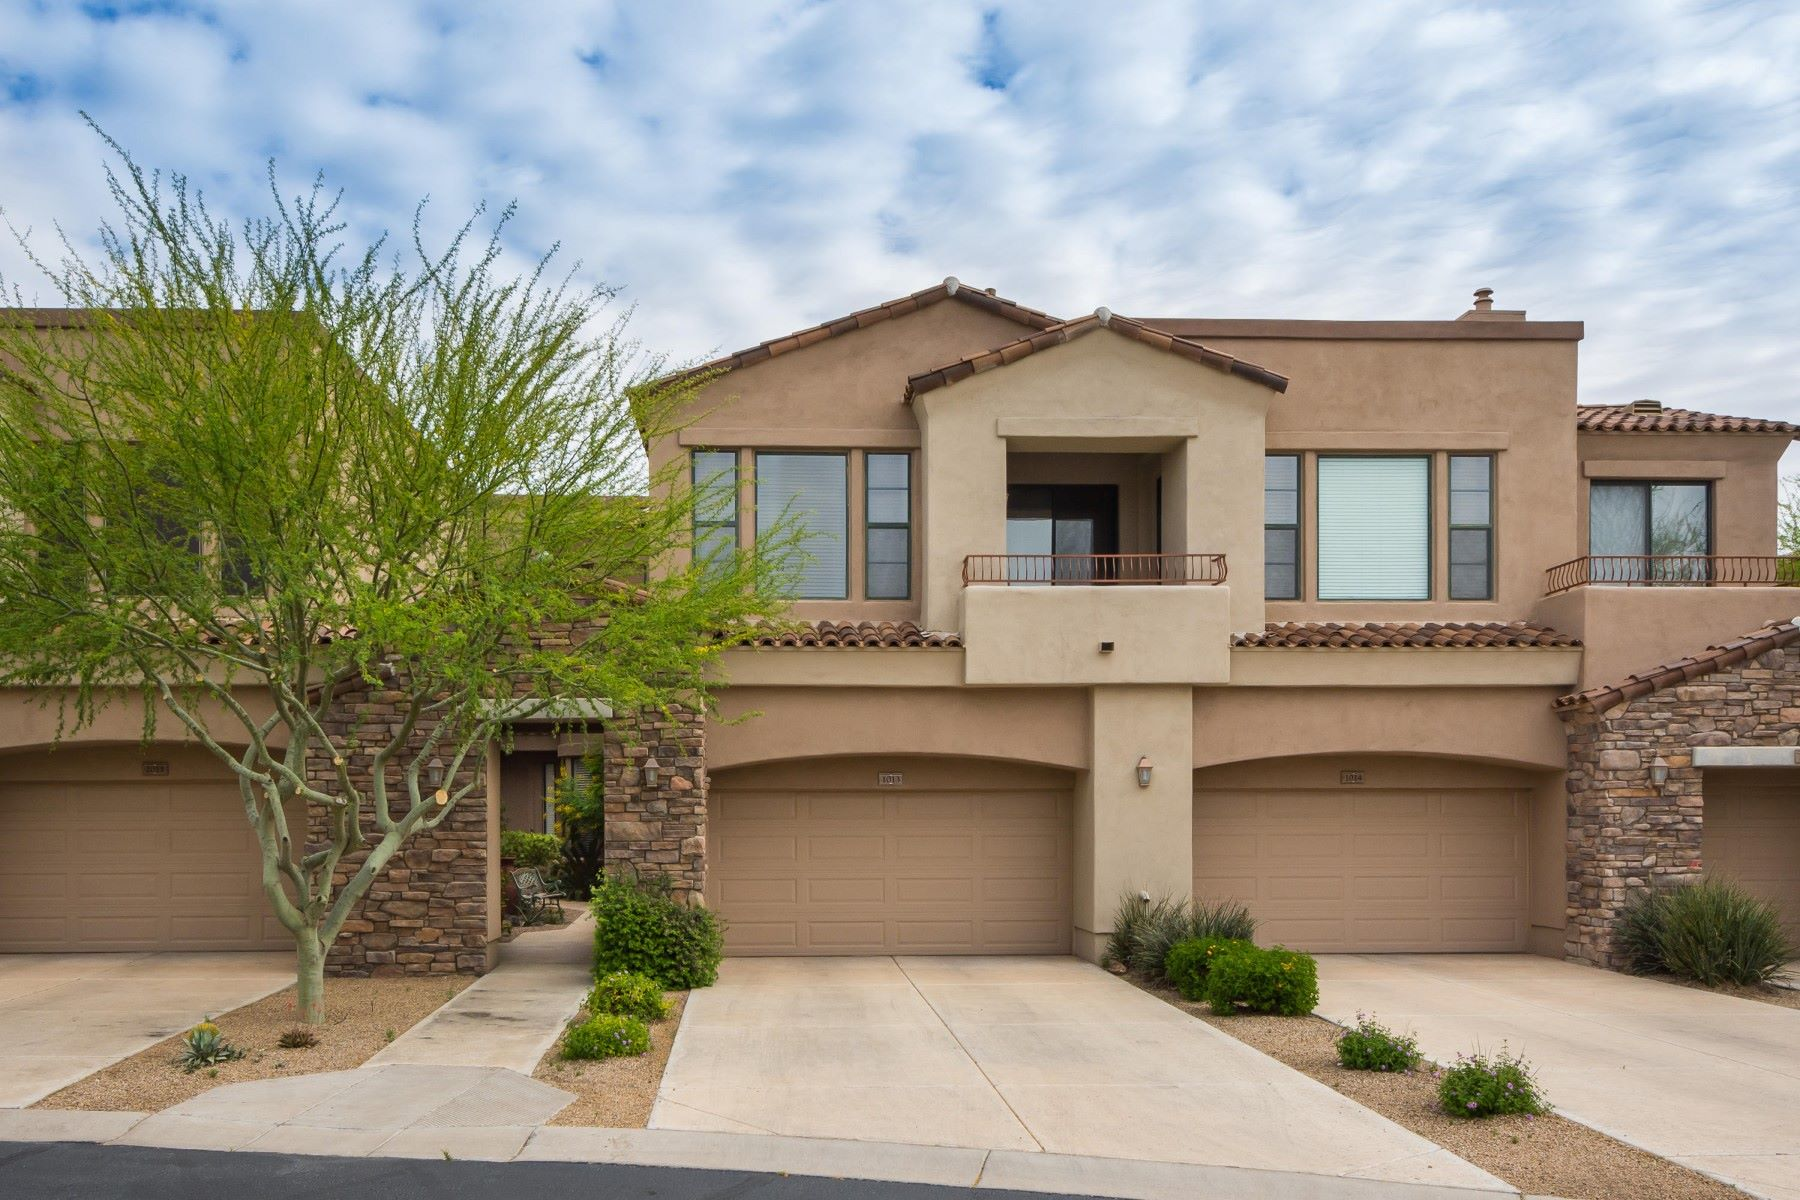 Townhouse for Sale at Single story ground level unit in the guarded Talon Retreat at Grayhawk 19550 N Grayhawk Dr #1013 Scottsdale, Arizona, 85255 United States